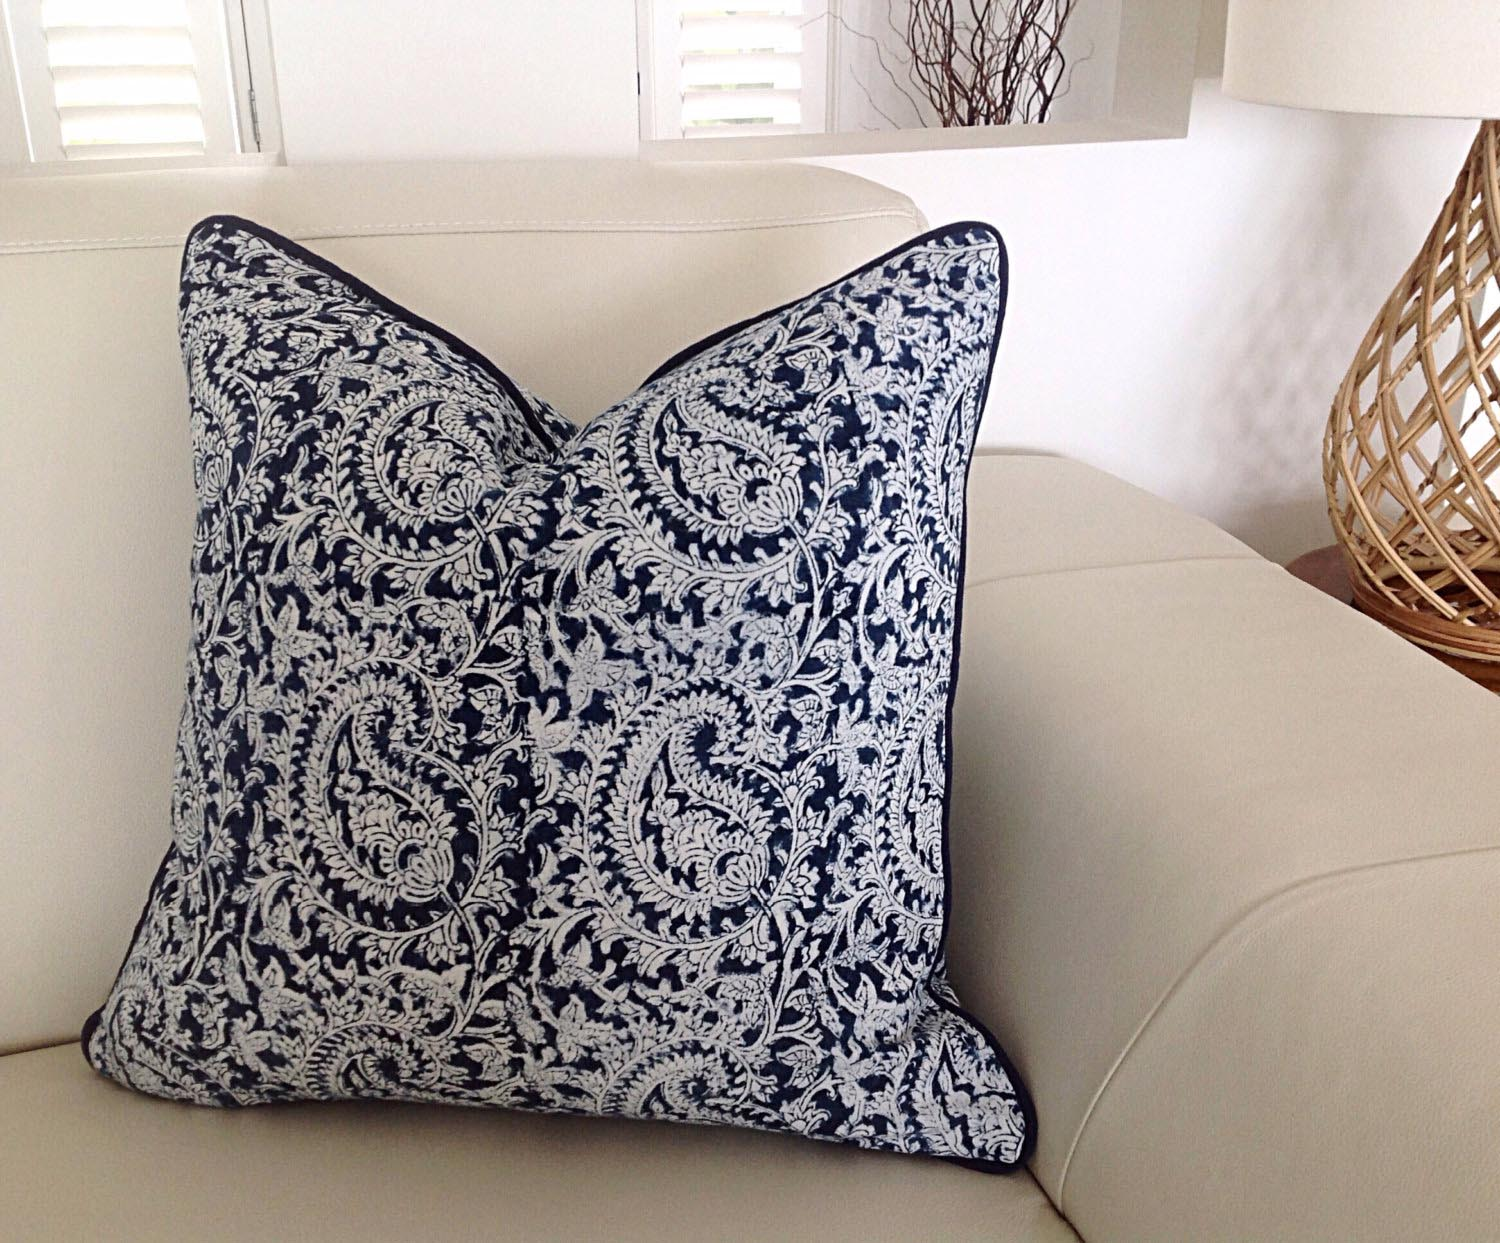 Navy Blue and White Pillows